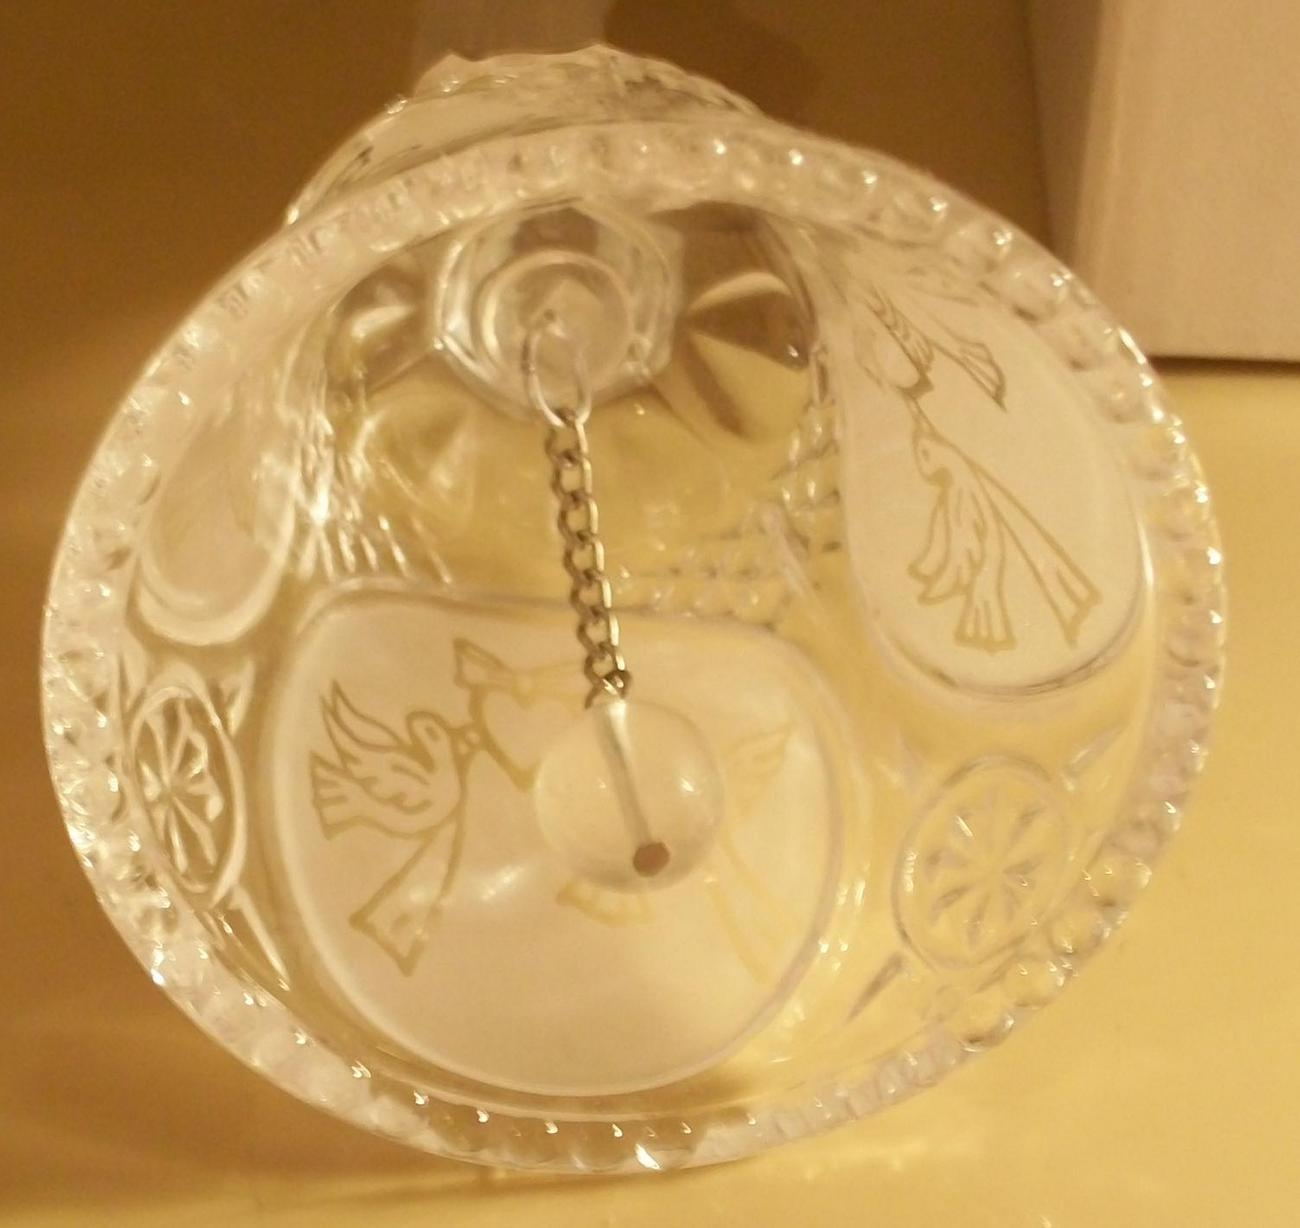 CRYSTAL WEDDING BELL BRAND NEW IN BOX